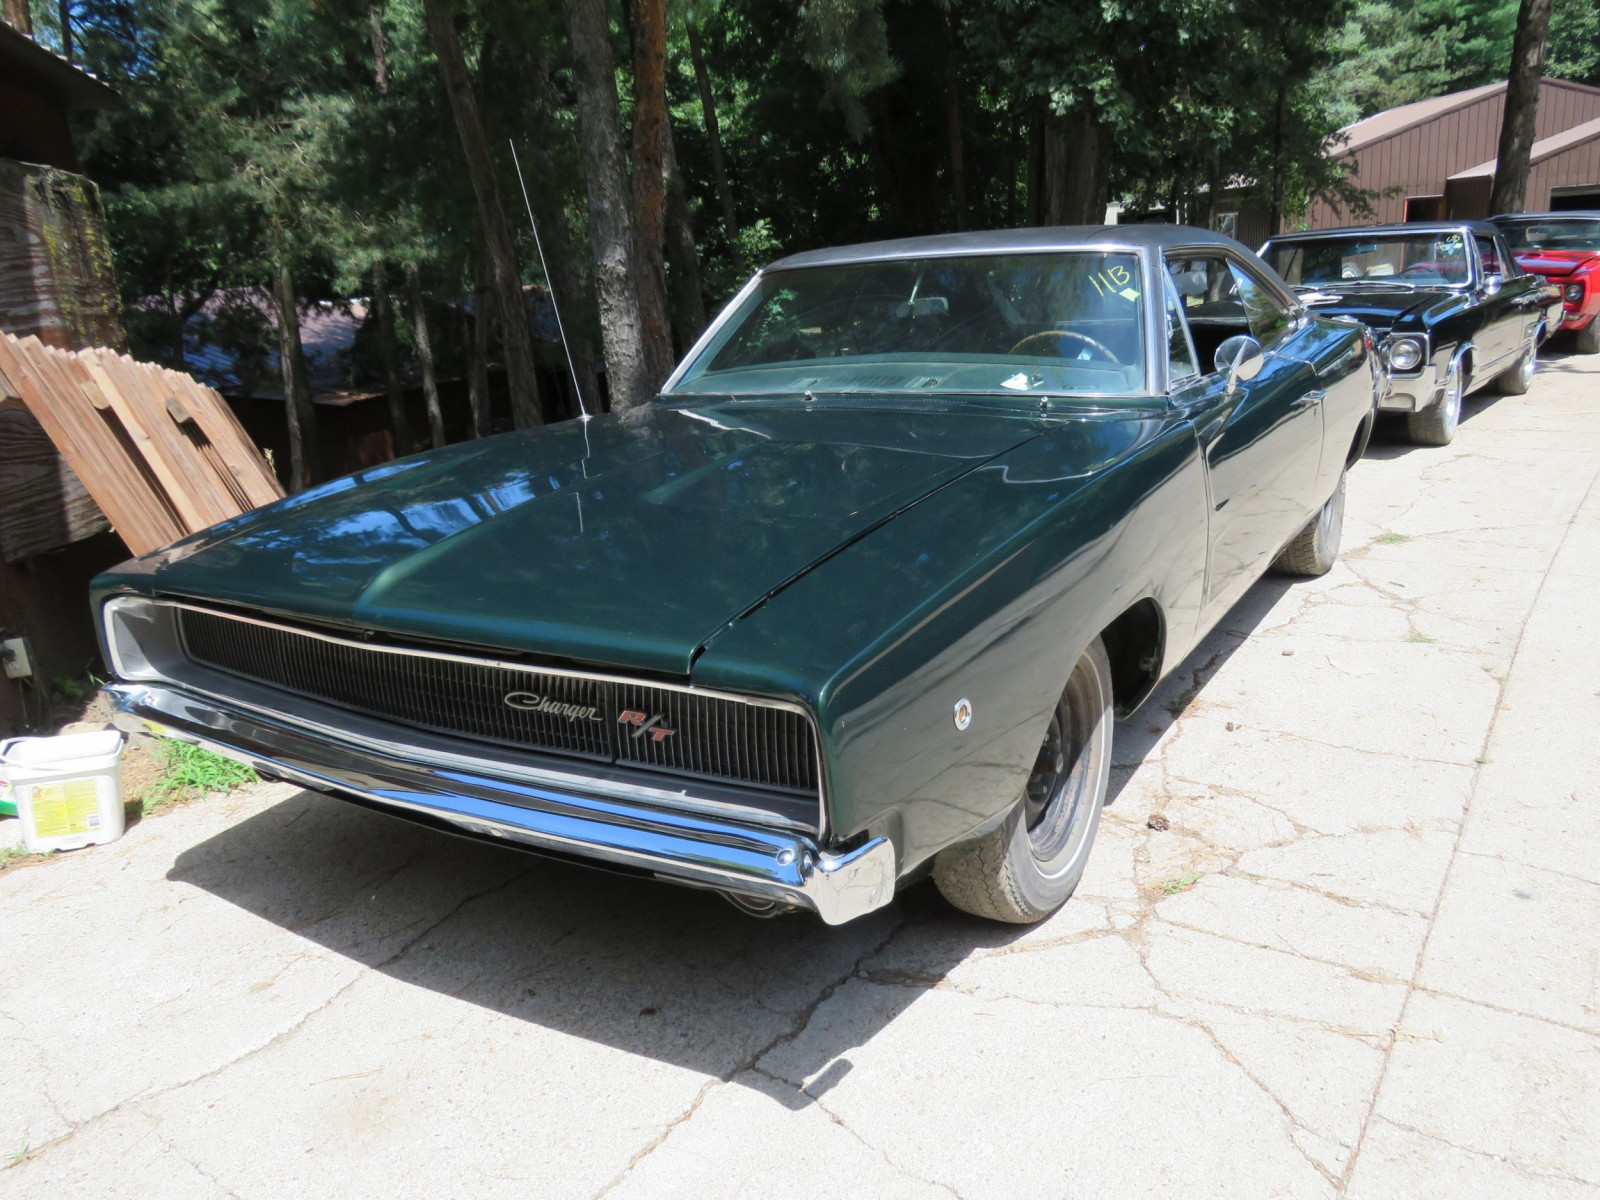 1968 Dodge Charger 2dr HT Coupe - Image 20